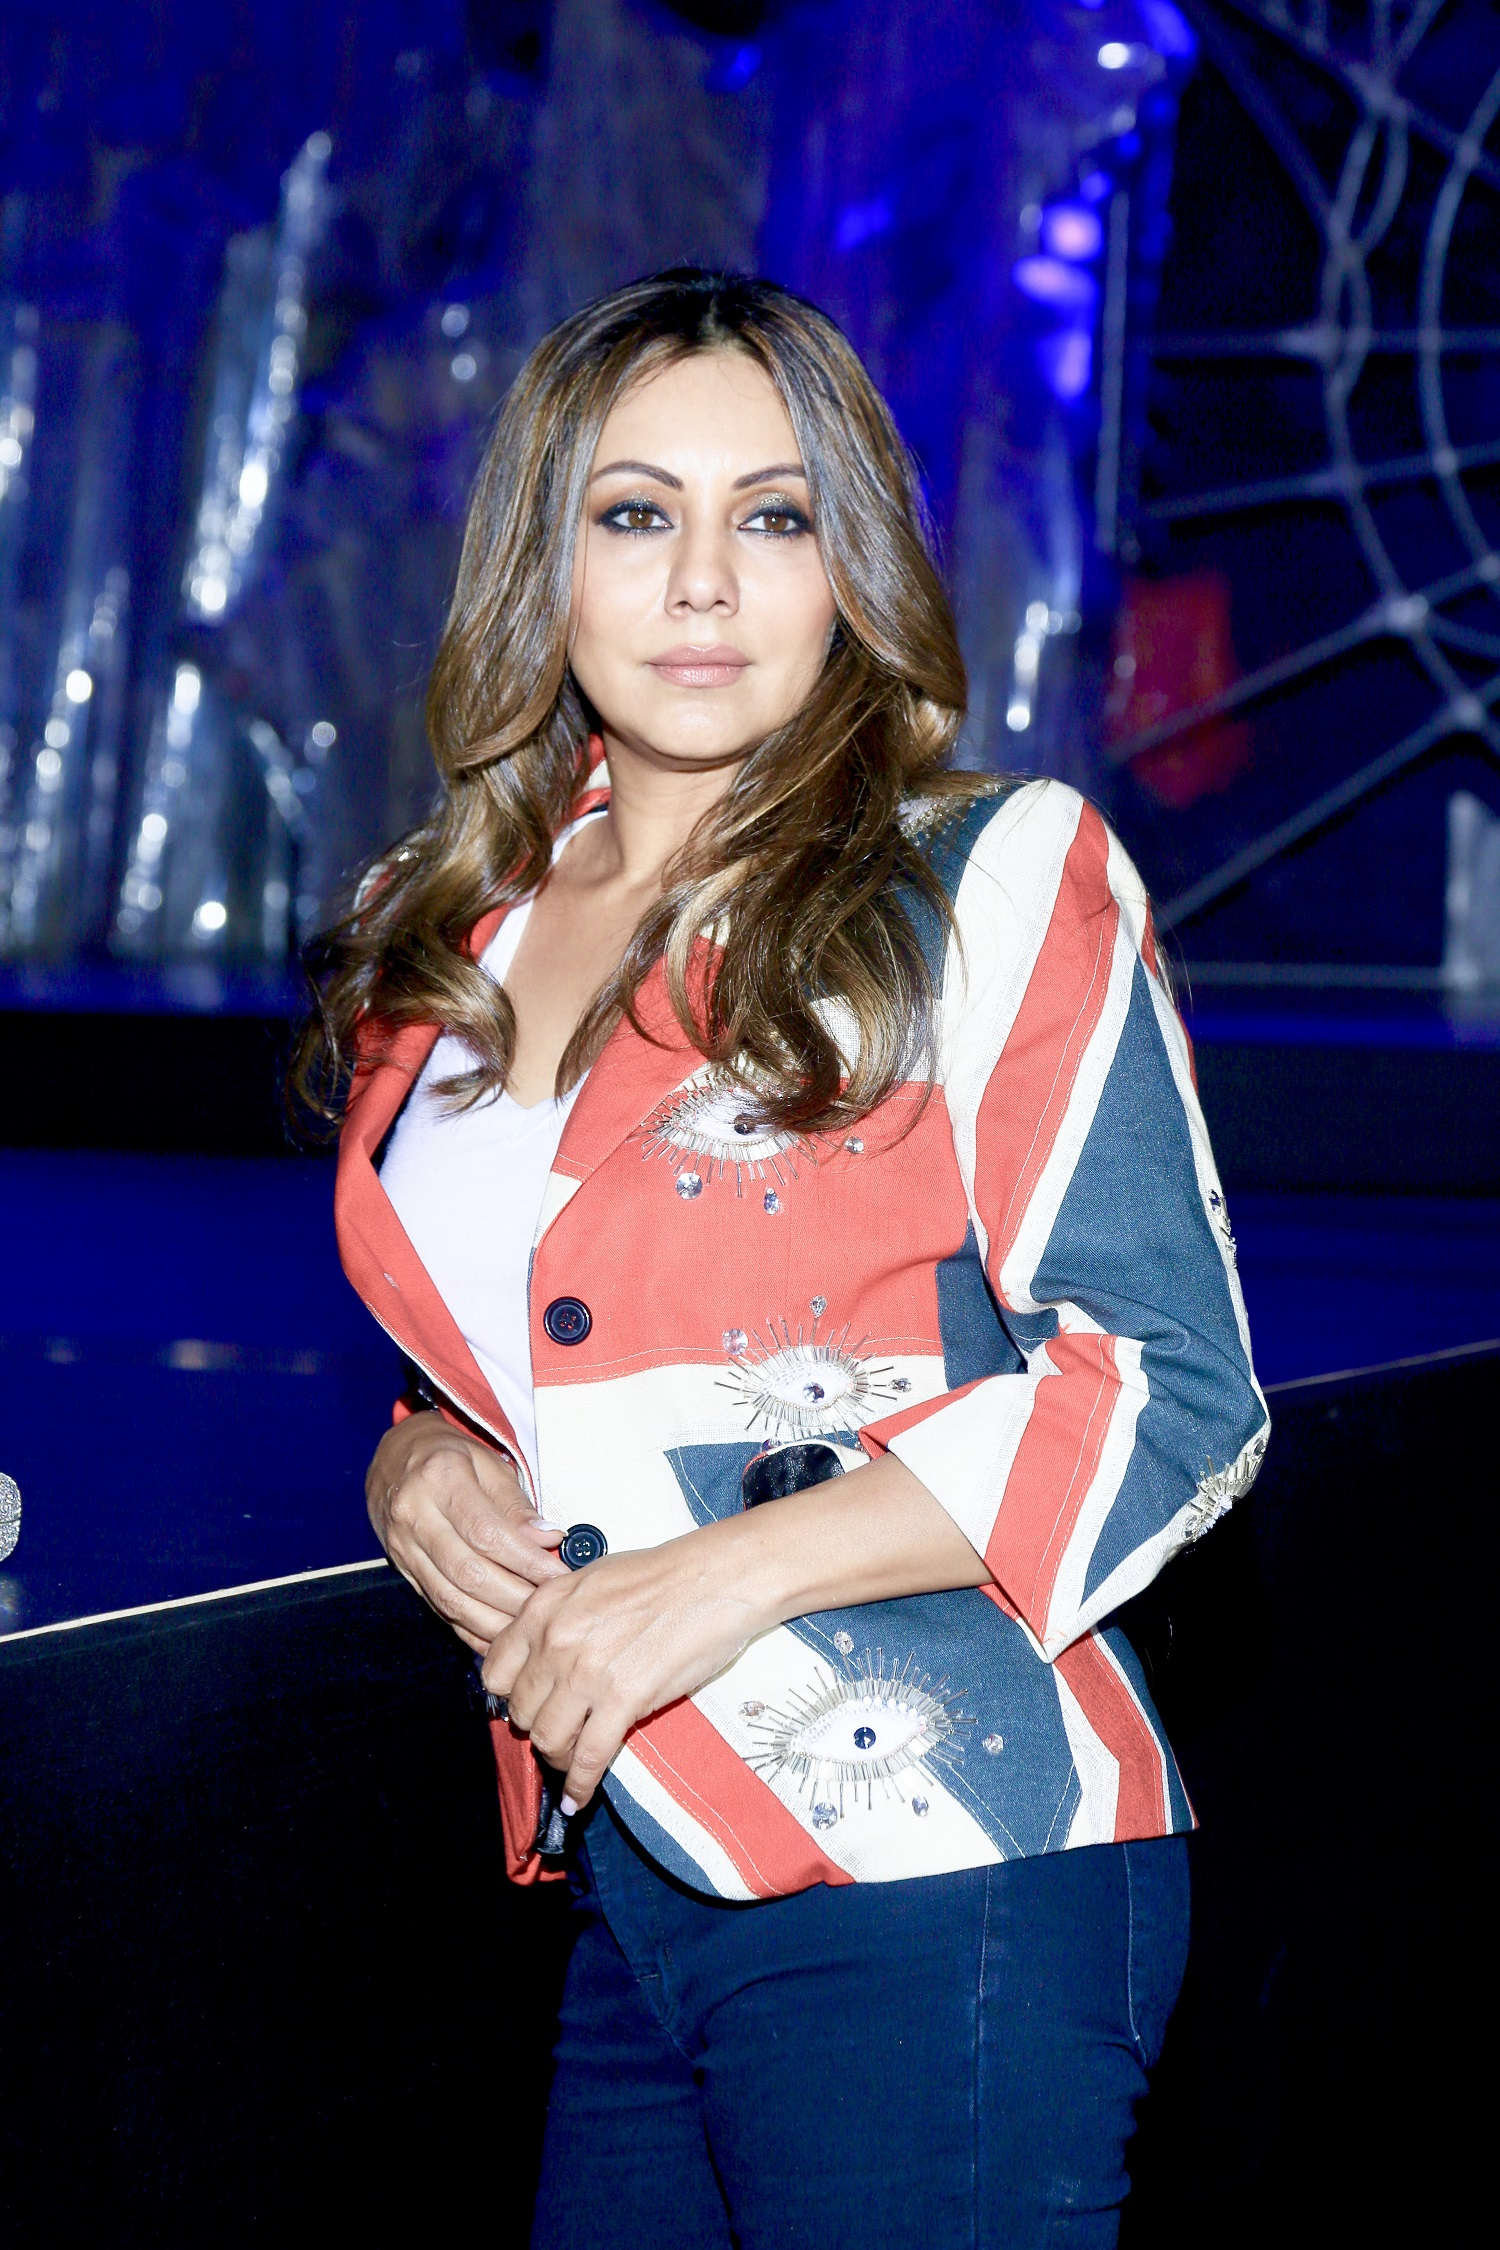 Gauri Khan at Cirque Le Soir, Delhi - Photo By GPN (Global Prime News)